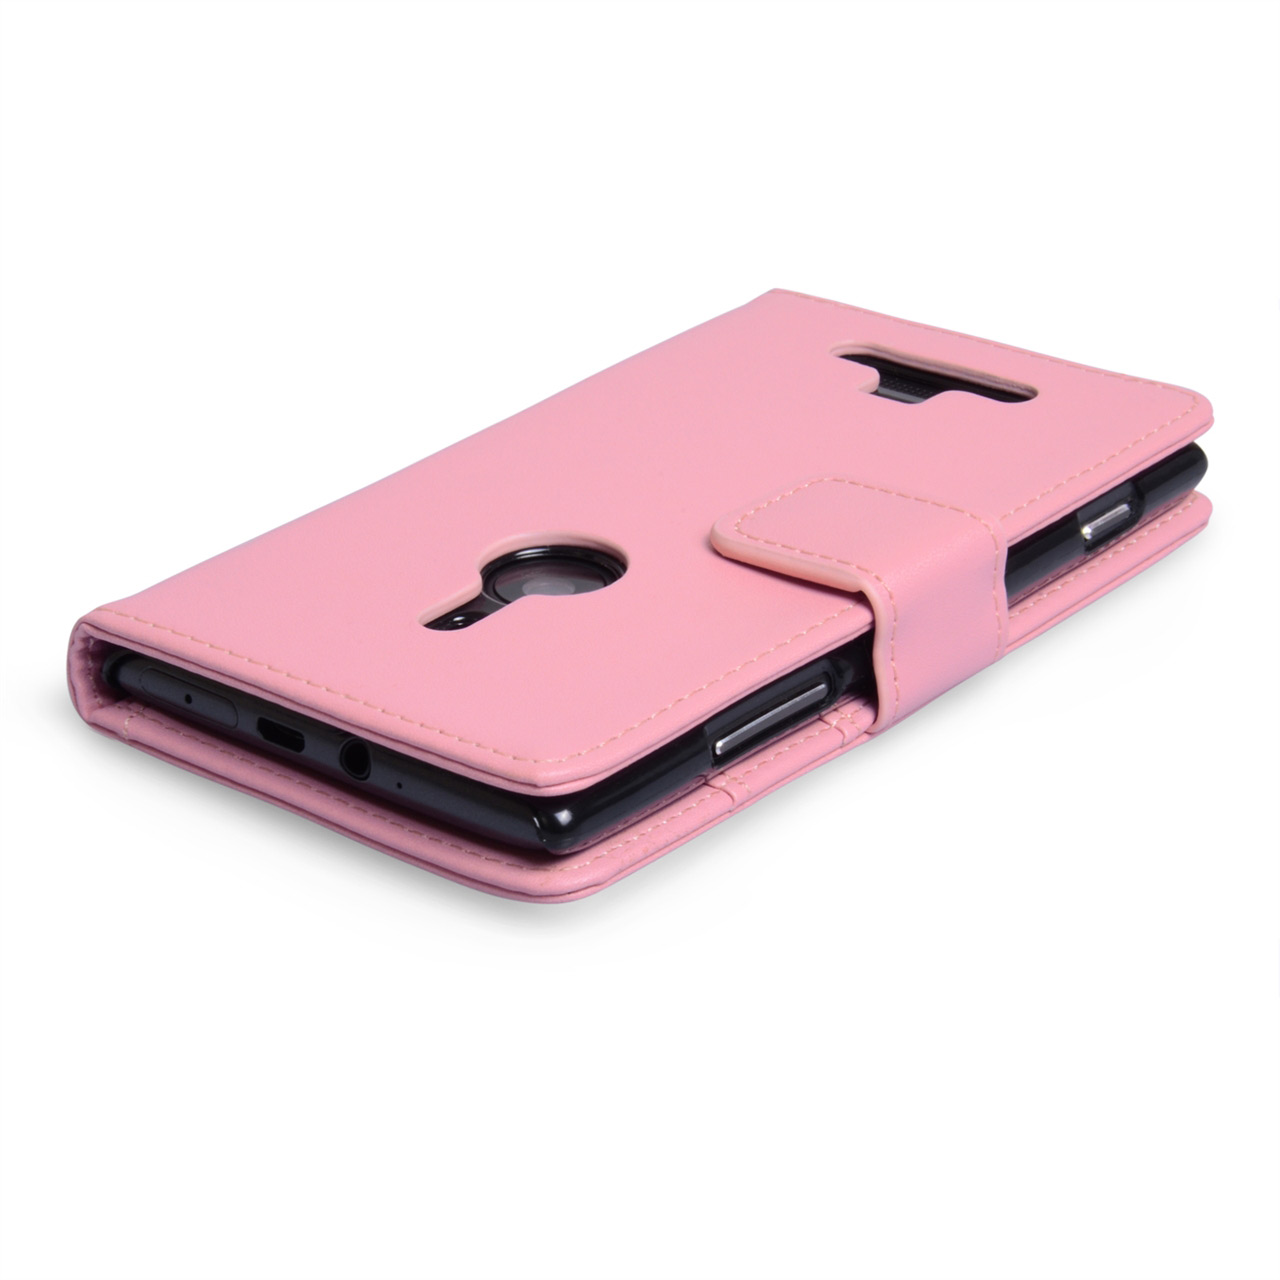 YouSave Accessories Nokia Lumia 925 Leather Effect Wallet Case - Pink